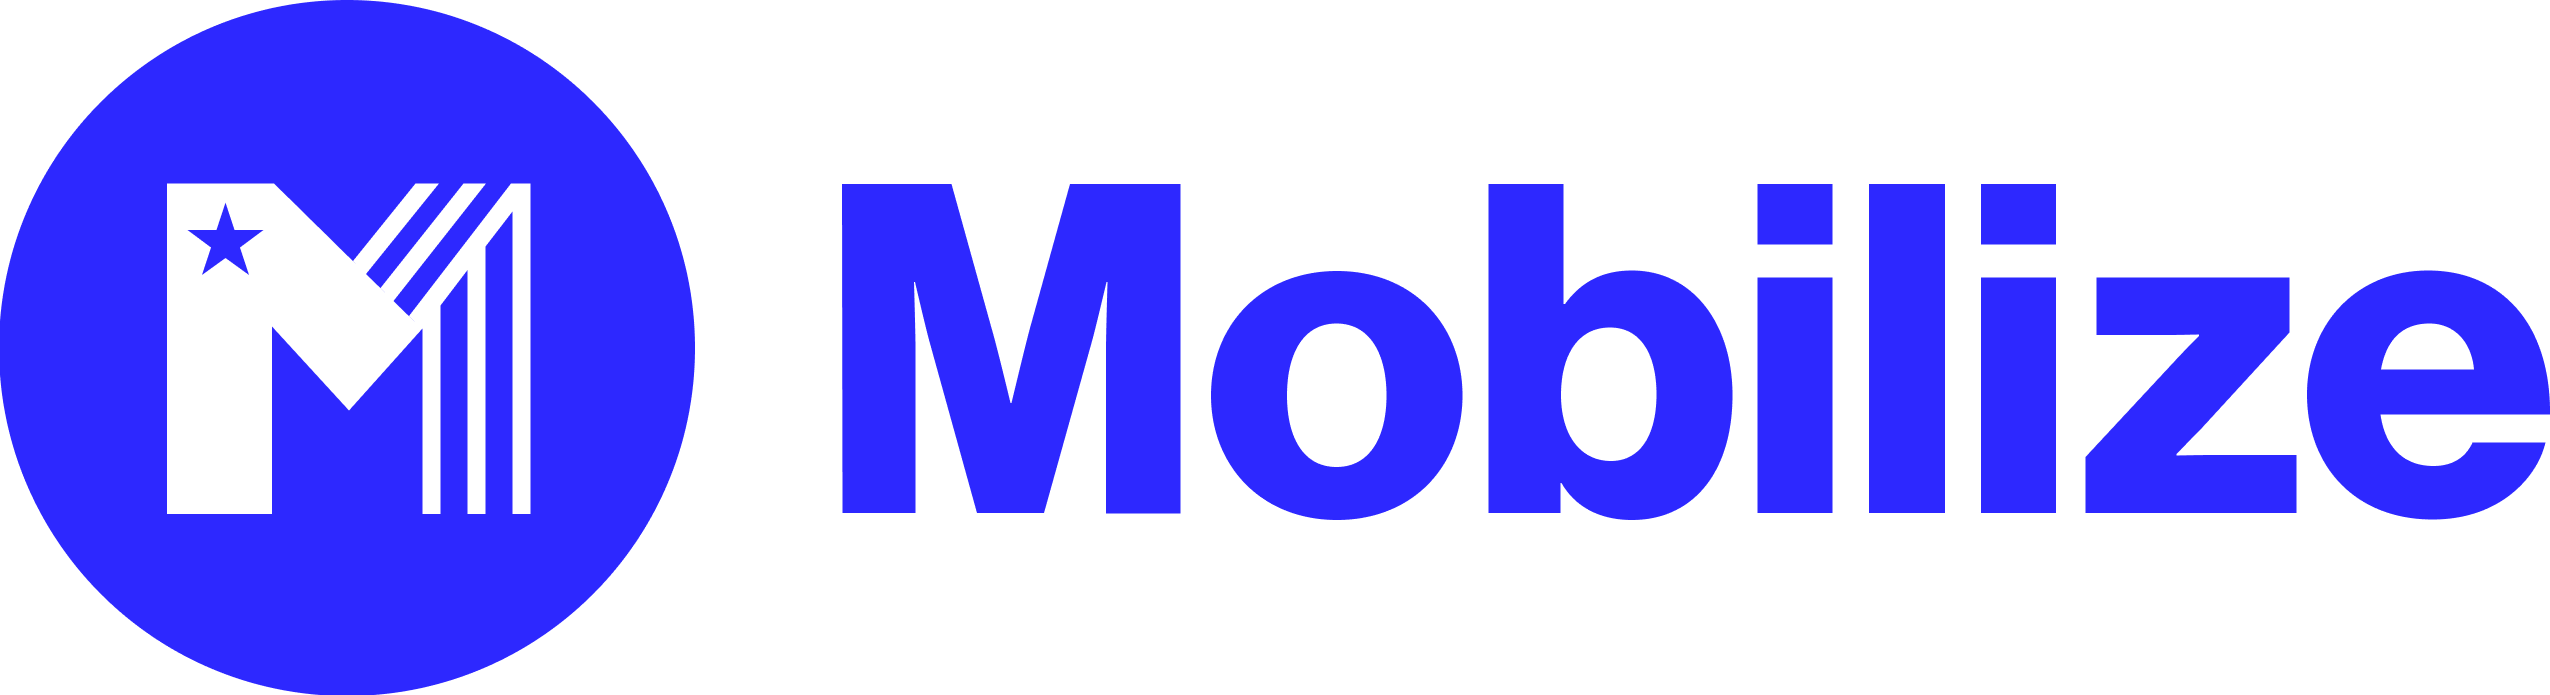 Blue mobilize logo